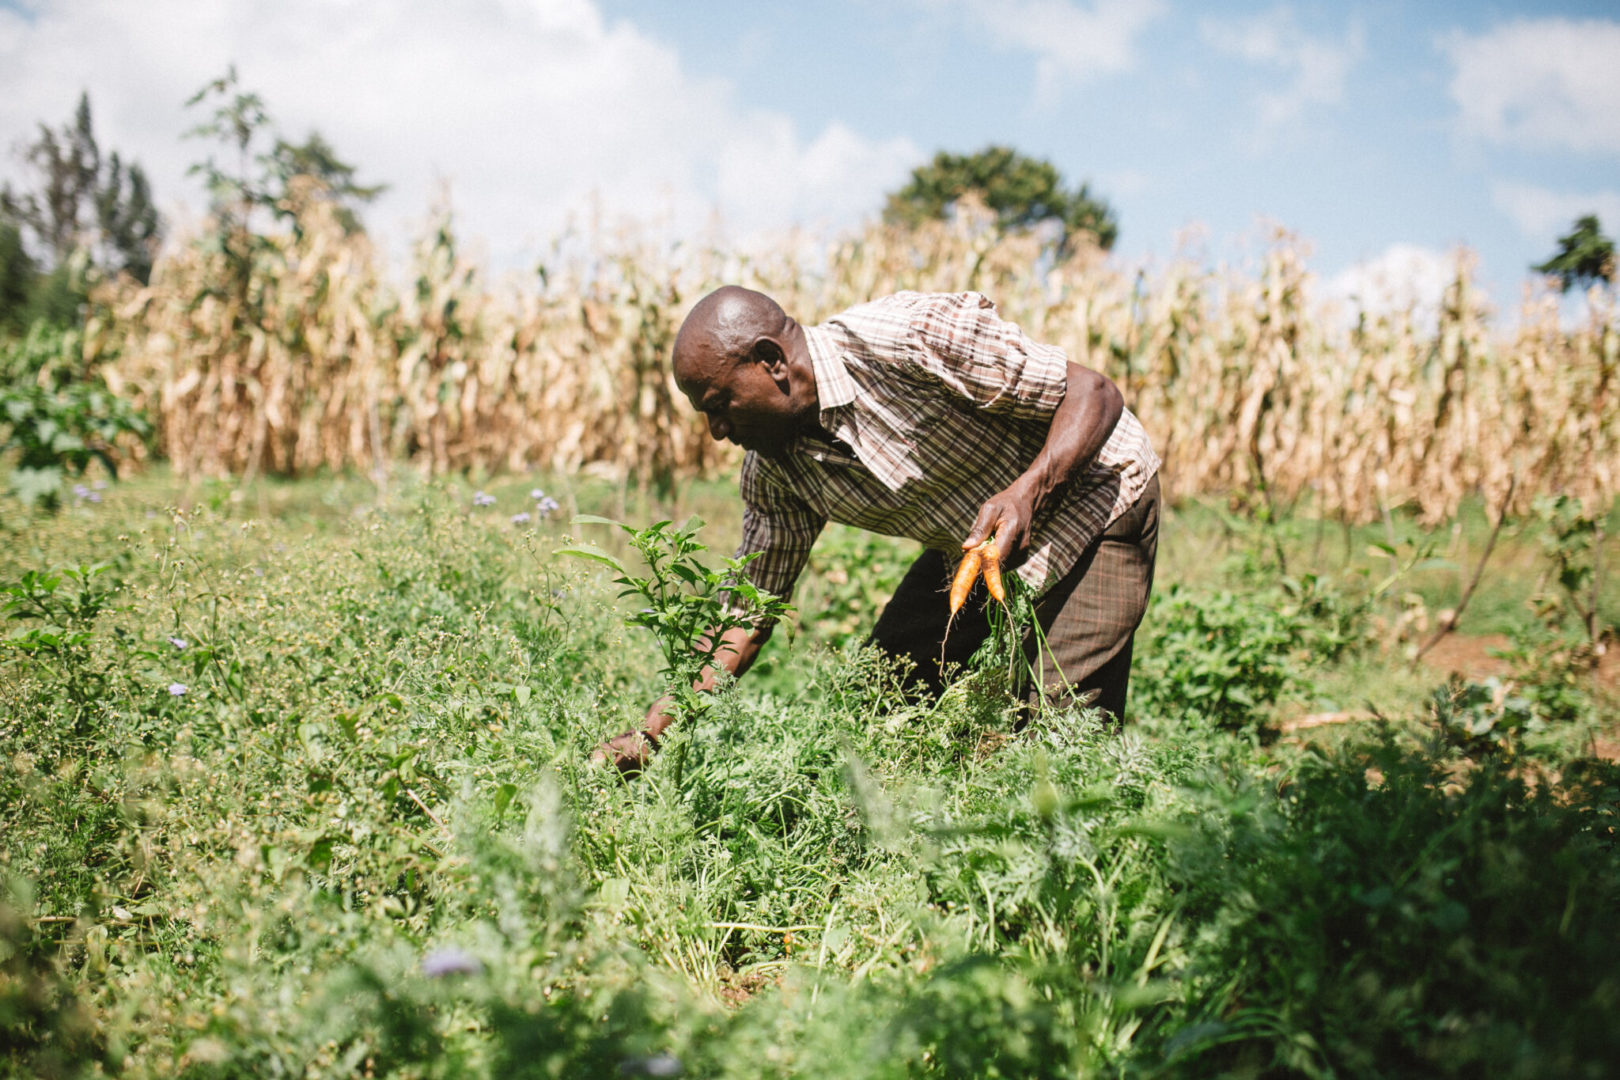 Farmers are embracing their roles as caretakers of creation